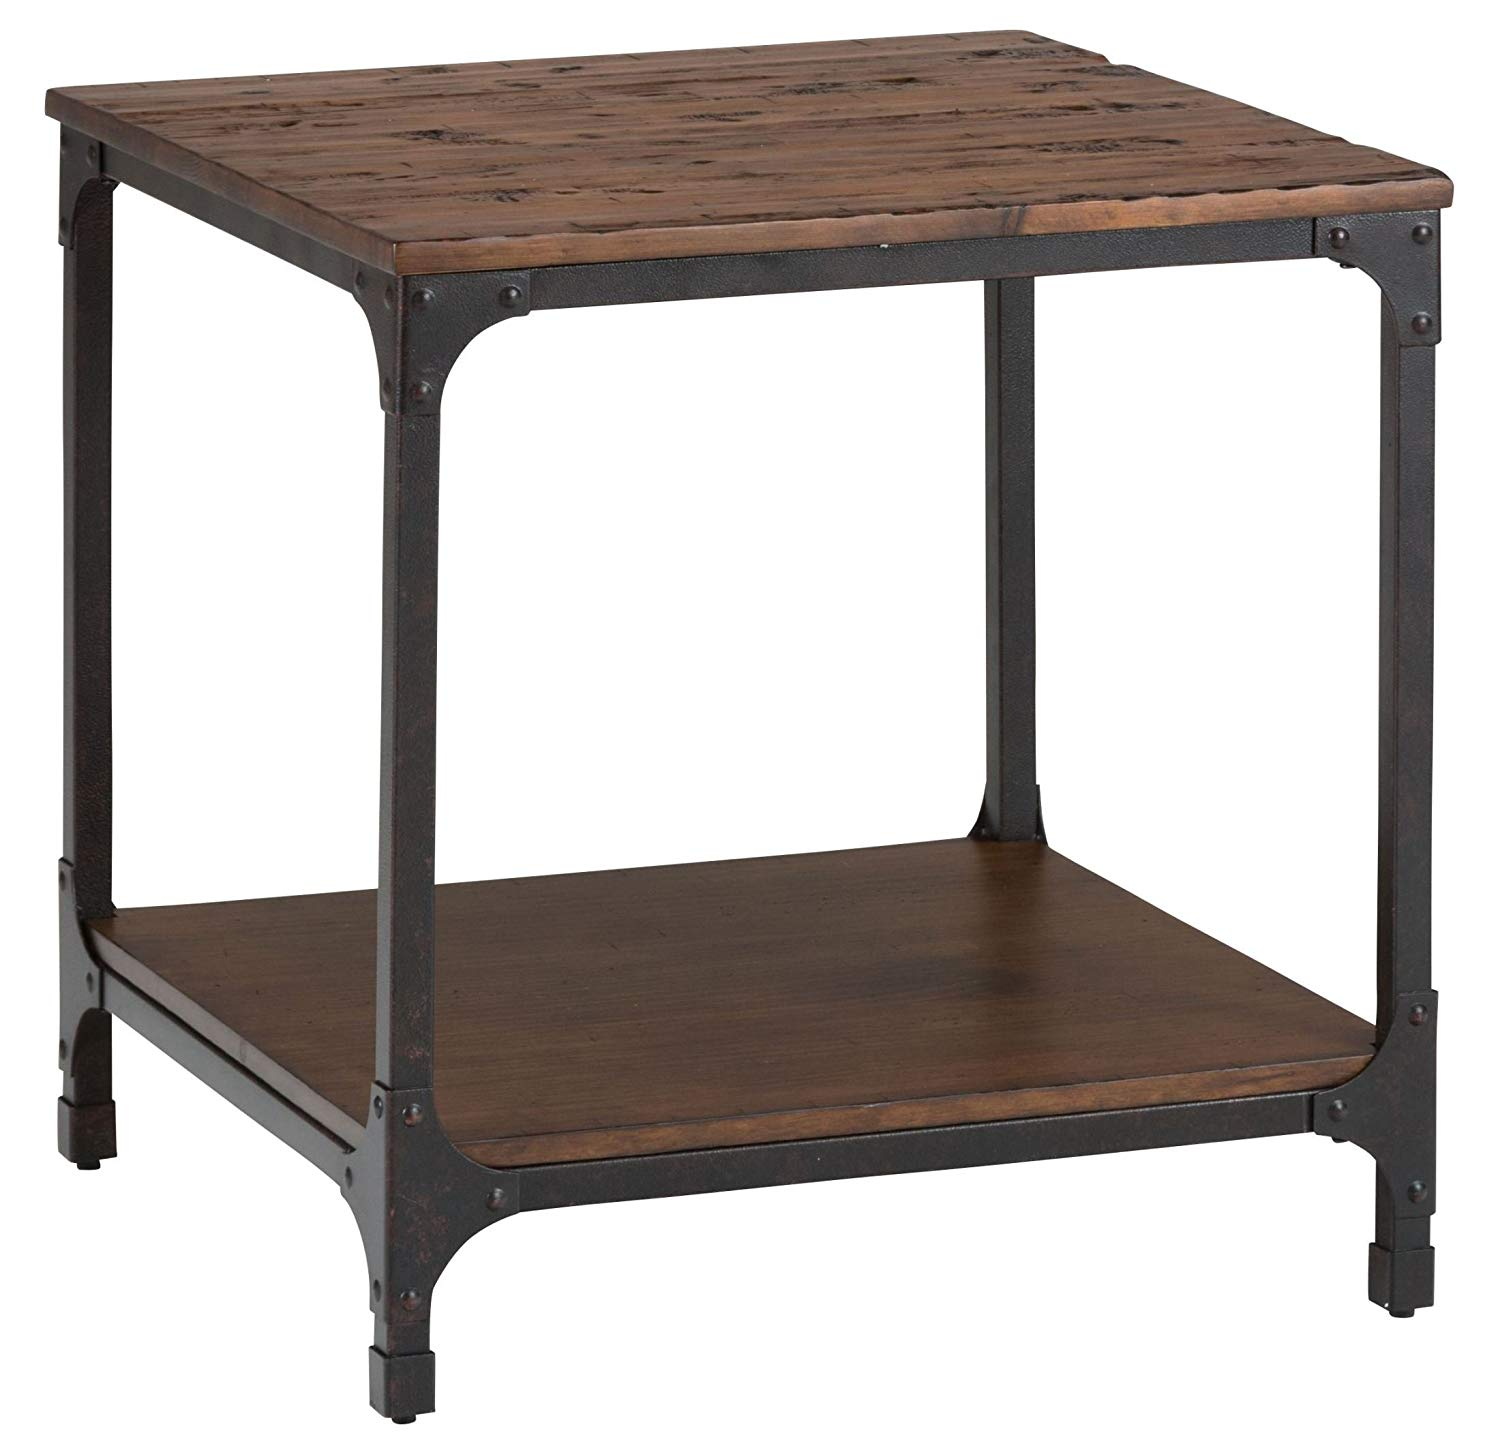 jofran urban nature wood square end table pine accent kitchen dining inexpensive side tables pier one furniture catalog ikea storage bench seat farm style antique chairside high